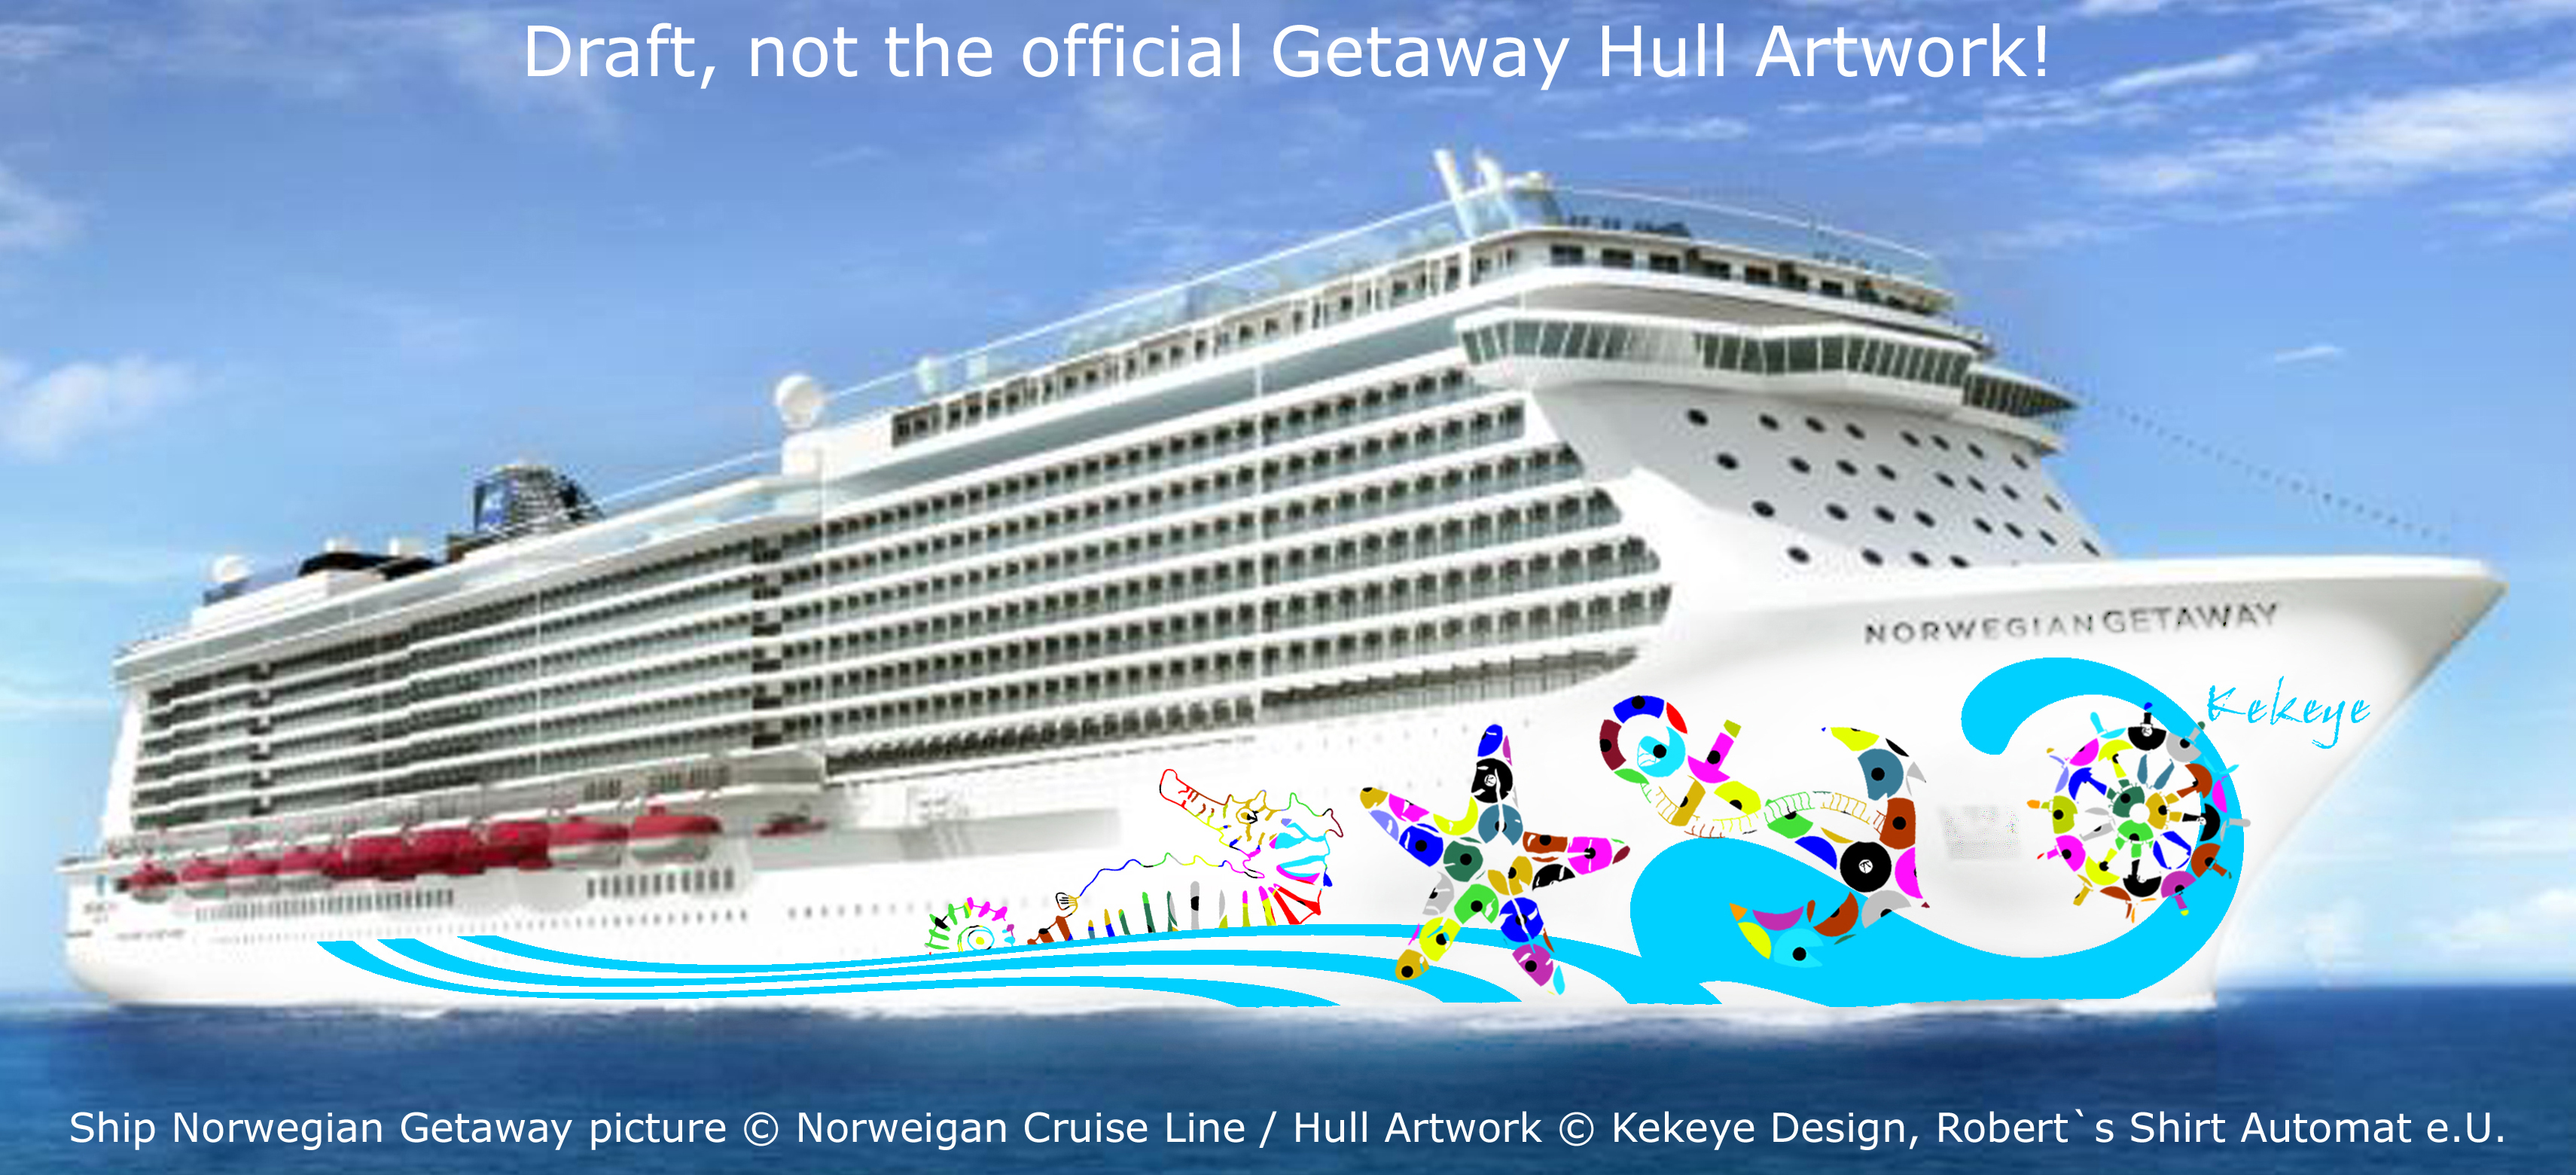 NCL Getaway Cruise Ship / Photo © Norwegian Cruise Line, Hull Artwork © Kekeye Design